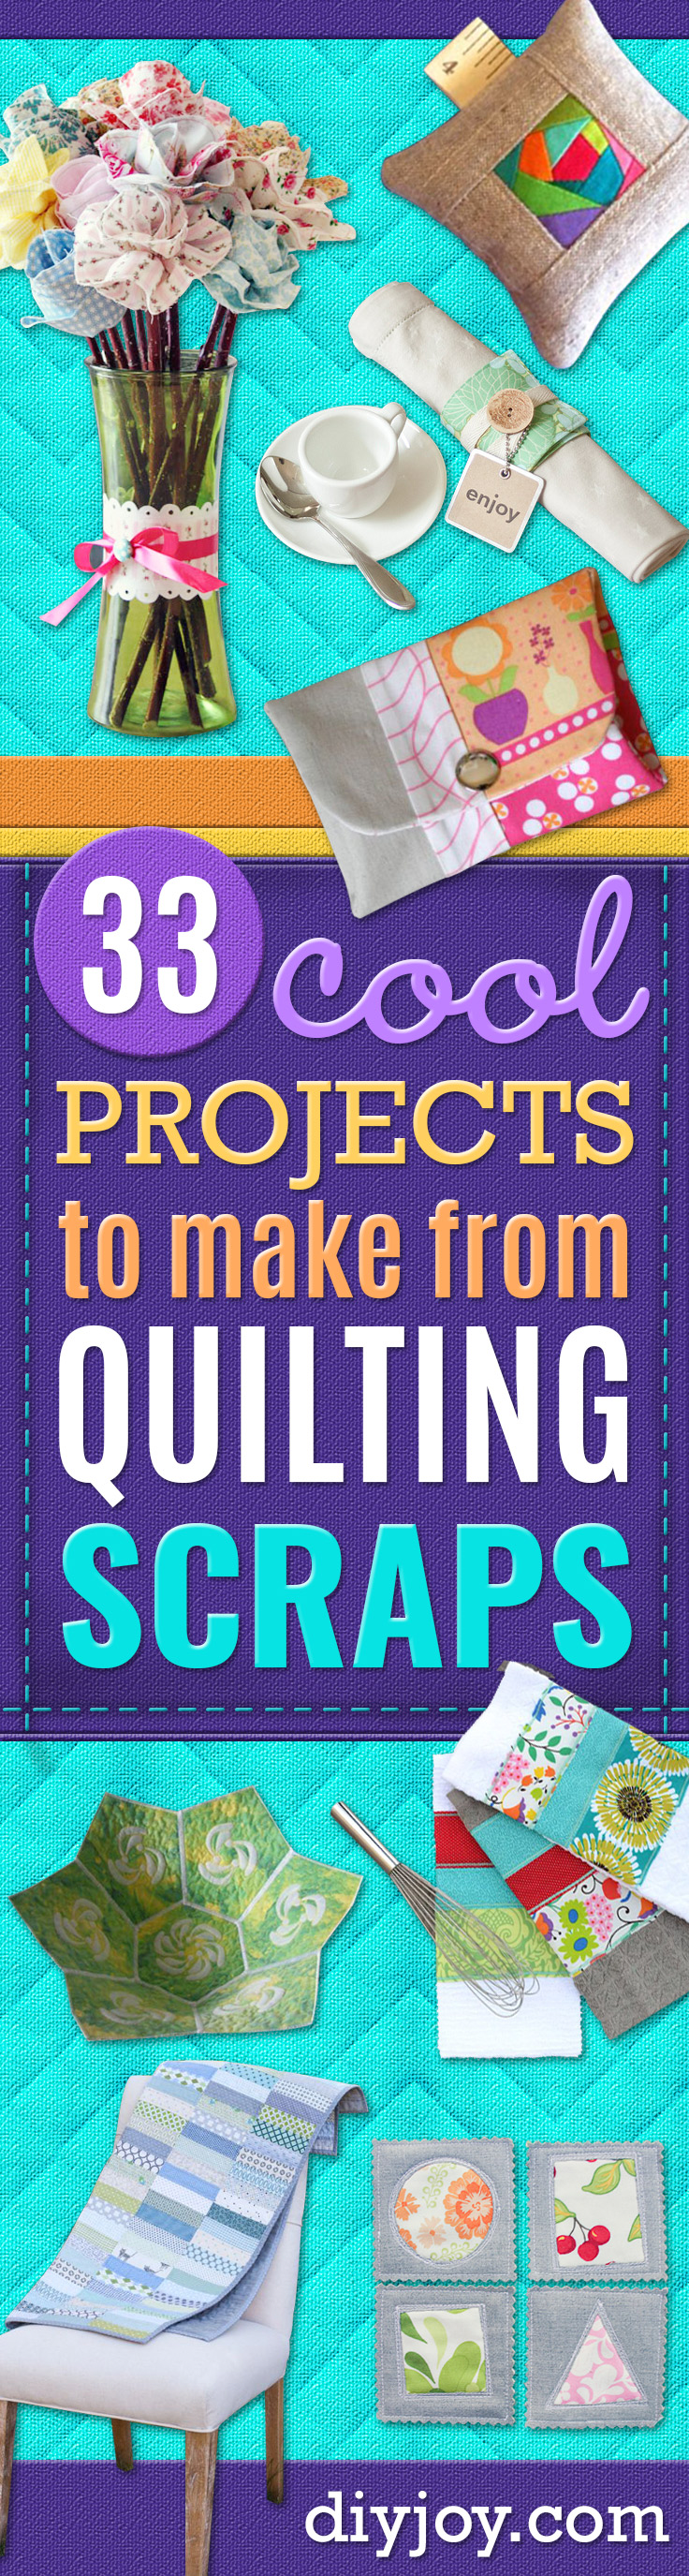 Quilting scrap ideas and Fabric Scraps Crafts Projects - Easy Ideas for Making DIY Home Decor, Homemade Gifts, Wall Art , Kitchen Accessories, Clothes and Fashion from Leftover Fabric Scrap and Quilt Pieces - Cute Do It Yourself Ideas for Birthday, Christmas, Baby